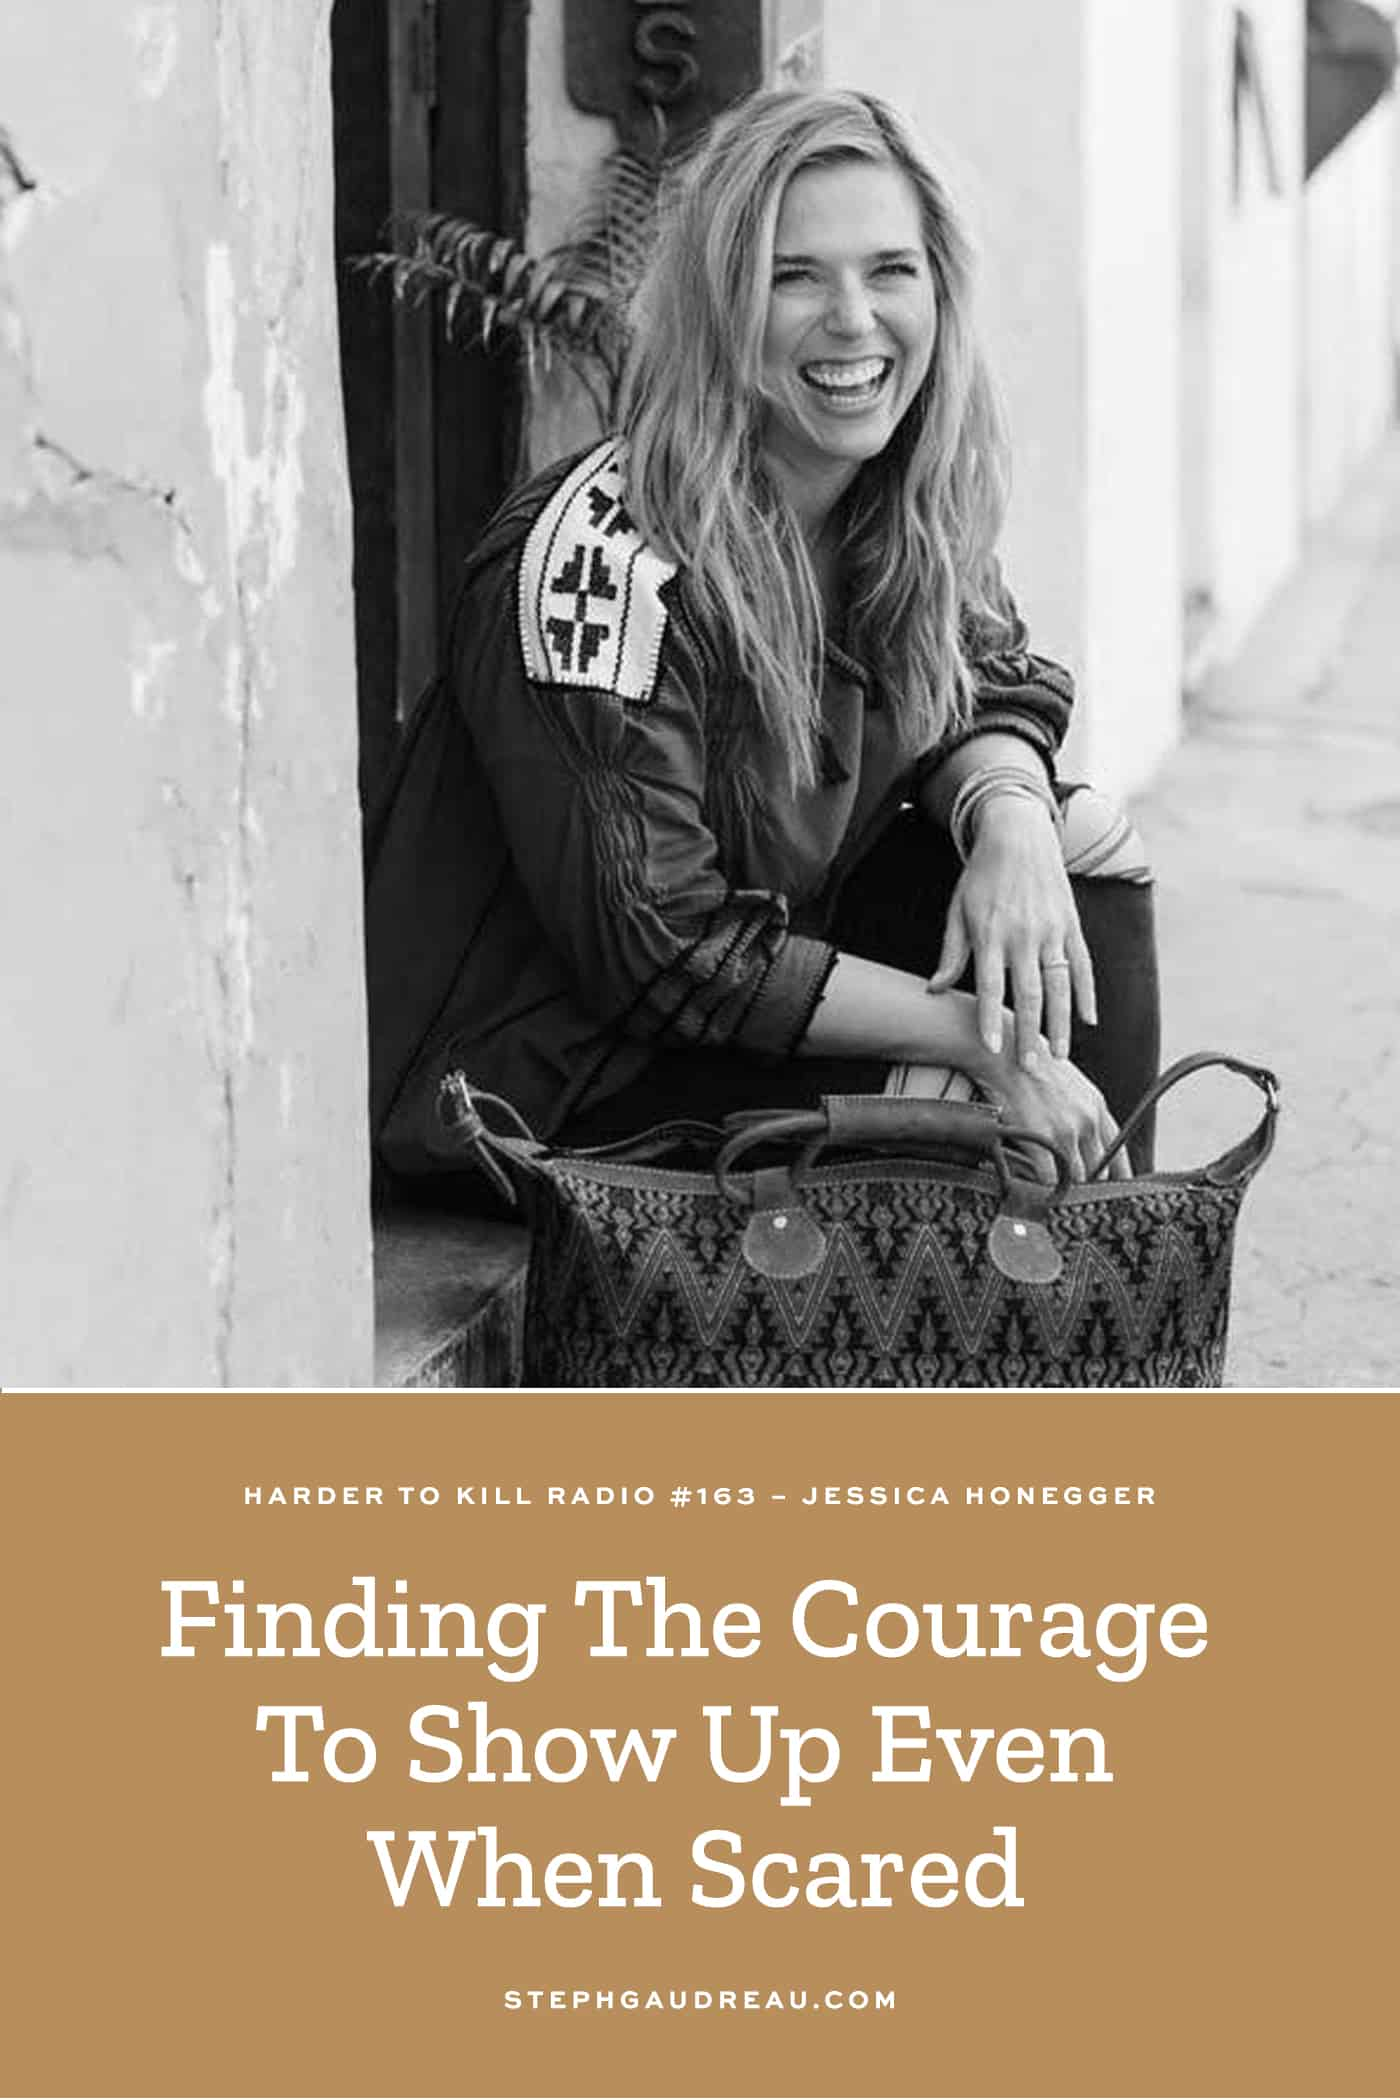 Harder To Kill Radio 163 Finding The Courage To Show Up Even When Scared w/ Jessica Honegger